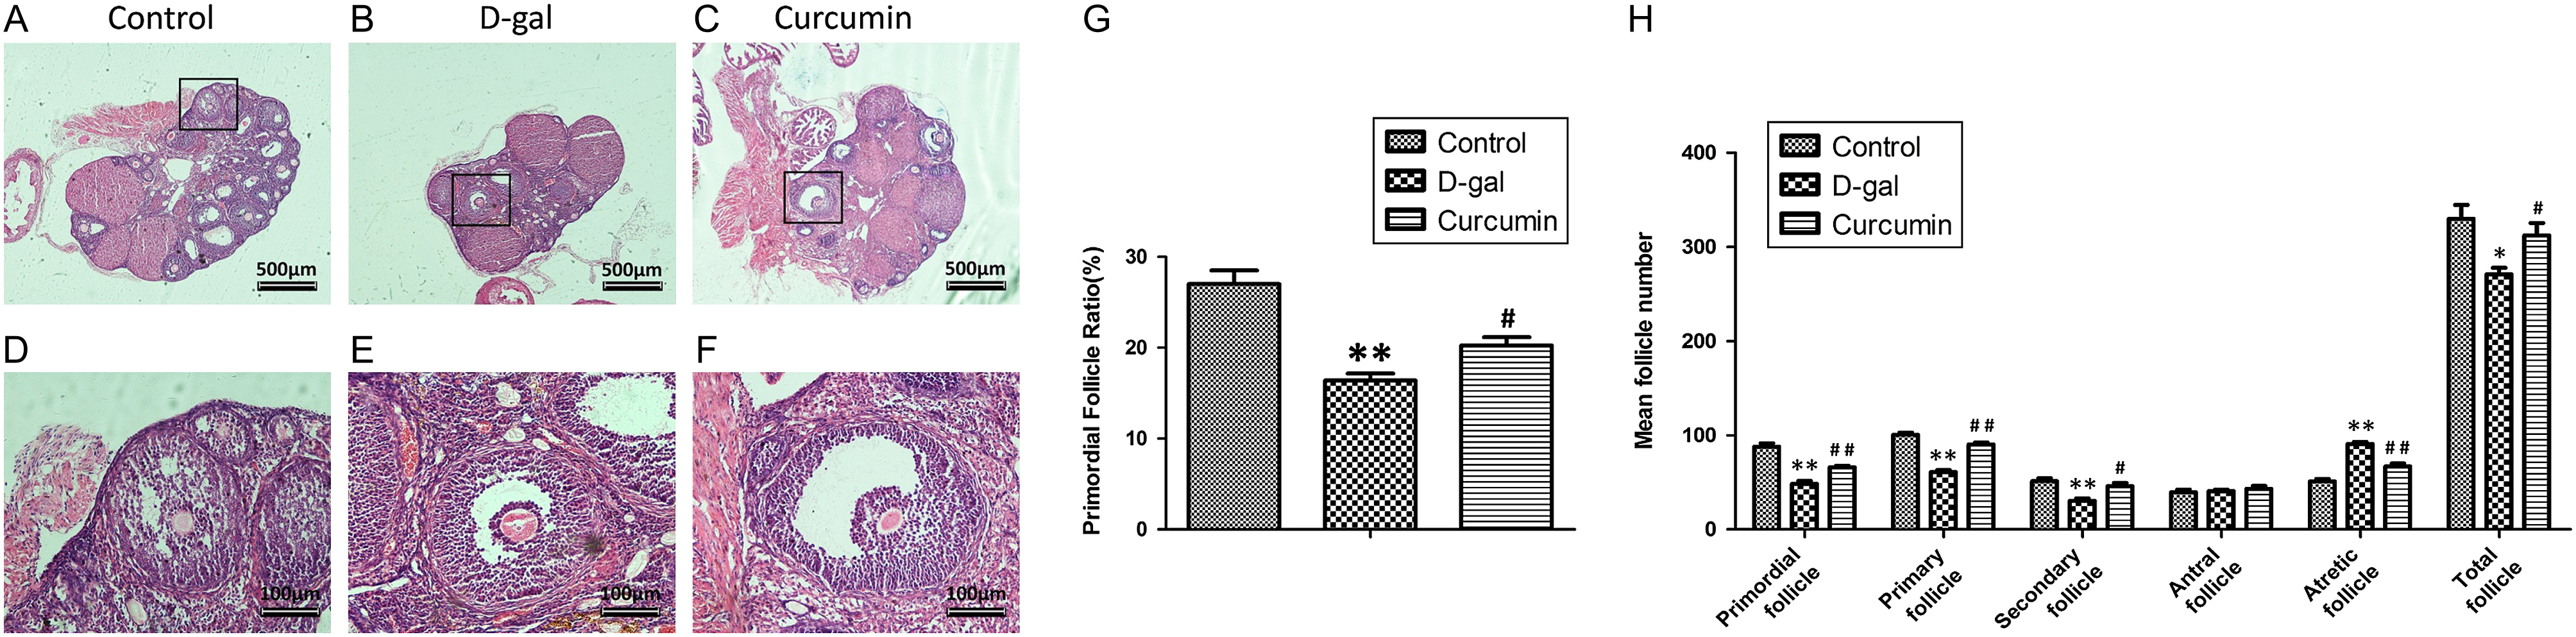 Curcumin exerts a protective effect against premature